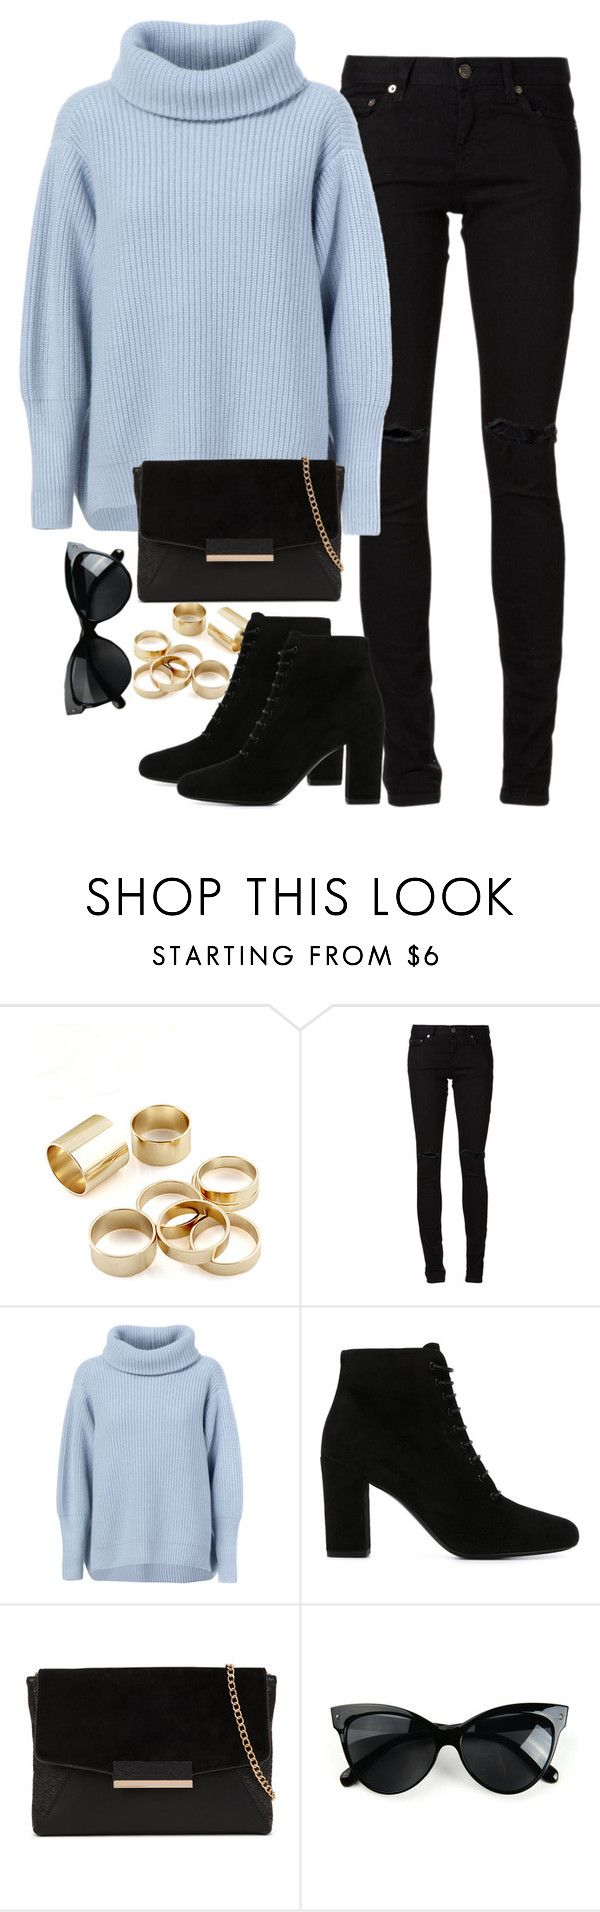 """Untitled #603"" by weyheytati ❤ liked on Polyvore featuring мода, Yves Saint Laurent, Maison Ullens и ALDO"